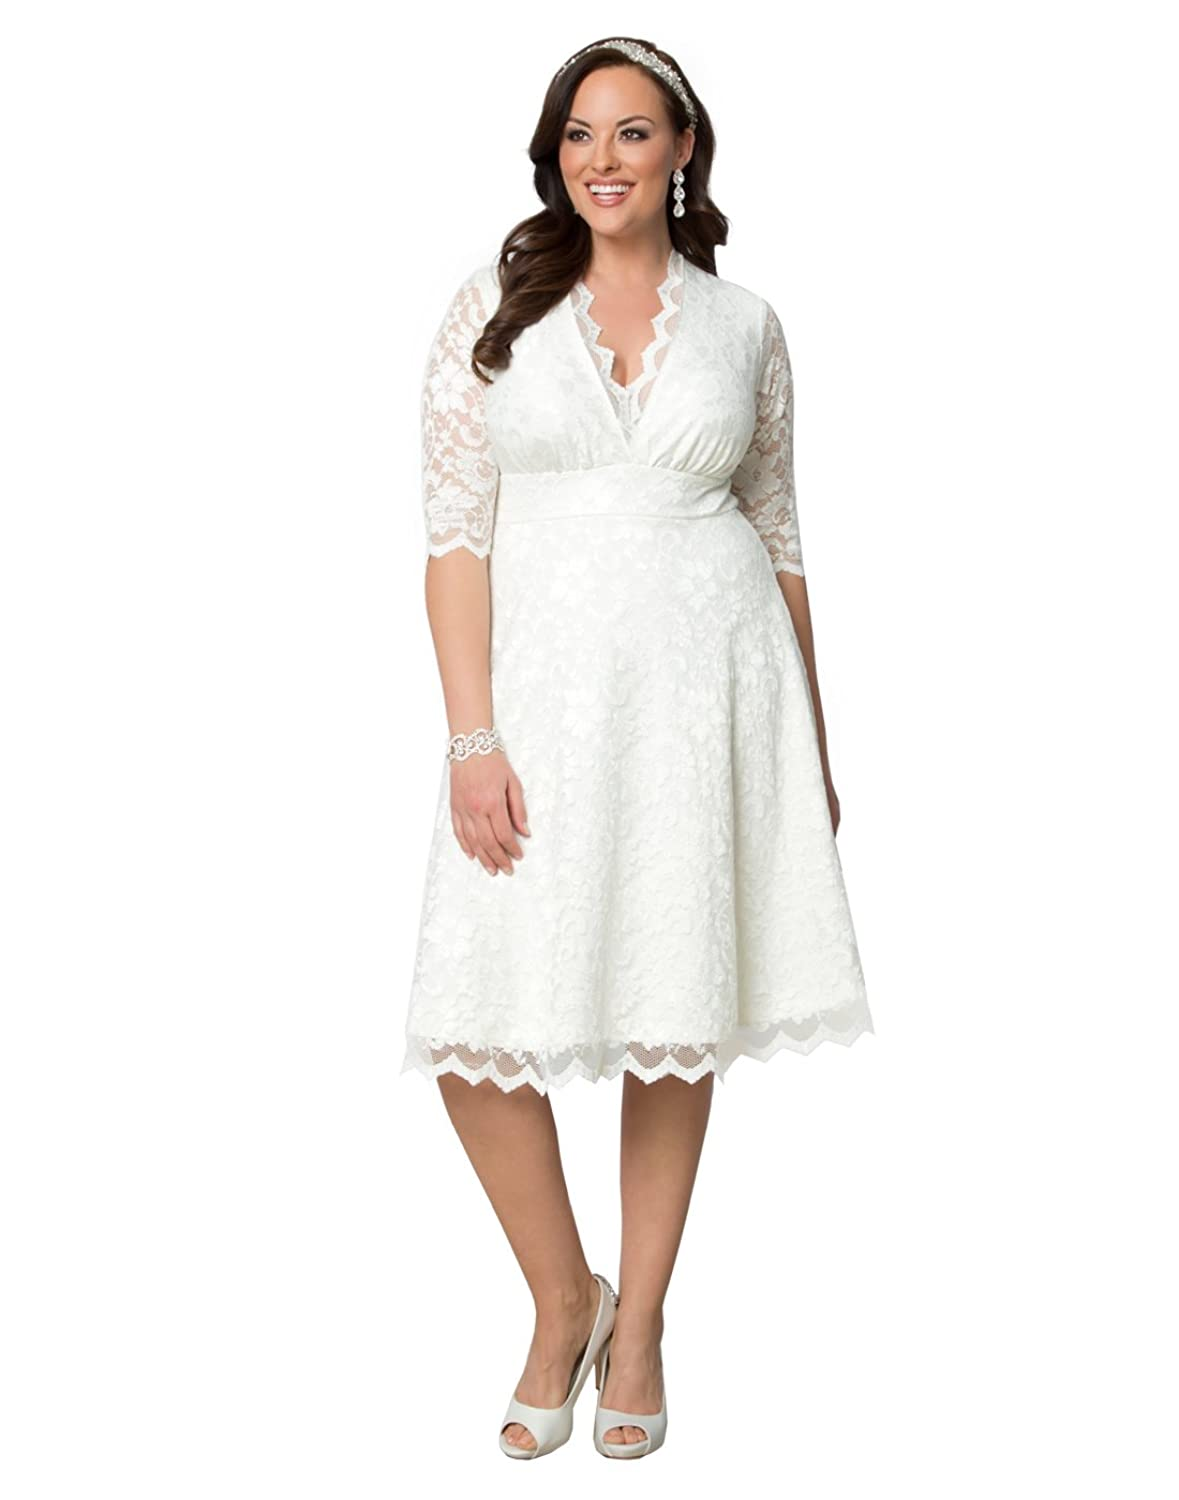 1960s Plus Size Dresses & Retro Mod Fashion Kiyonna Womens Plus Size Wedding Belle Dress $248.00 AT vintagedancer.com